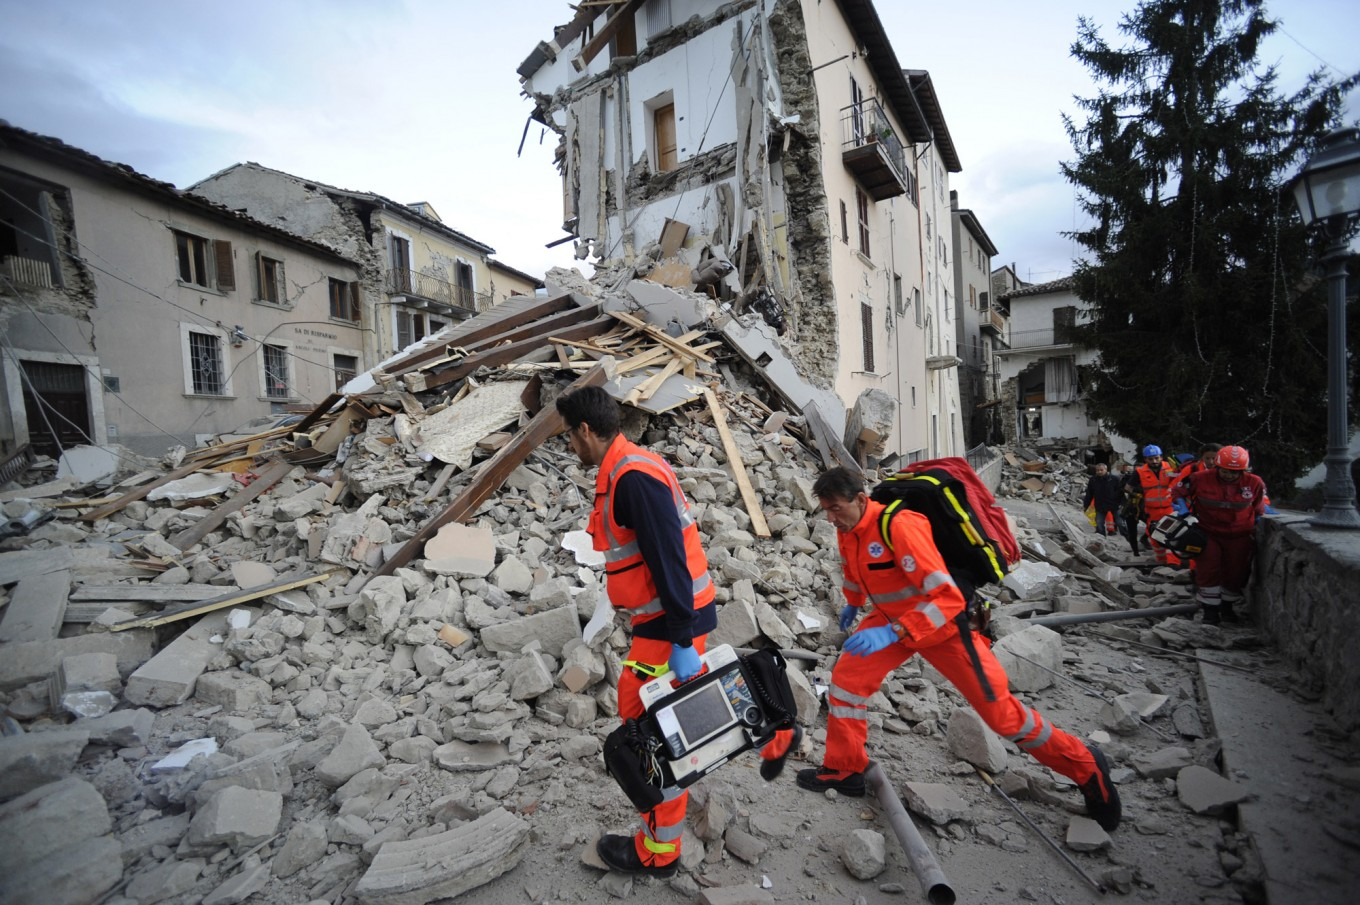 Rescuers search a crumbled building in Arcuata del Tronto, central Italy, where a 6.1 earthquake struck just after 3:30 a.m., Wednesday, Aug. 24, 2016. The quake was felt across a broad section of central Italy, including the capital Rome where people  in homes in the historic center felt a long swaying followed by aftershocks. AP Photo/Sandro Perozzi